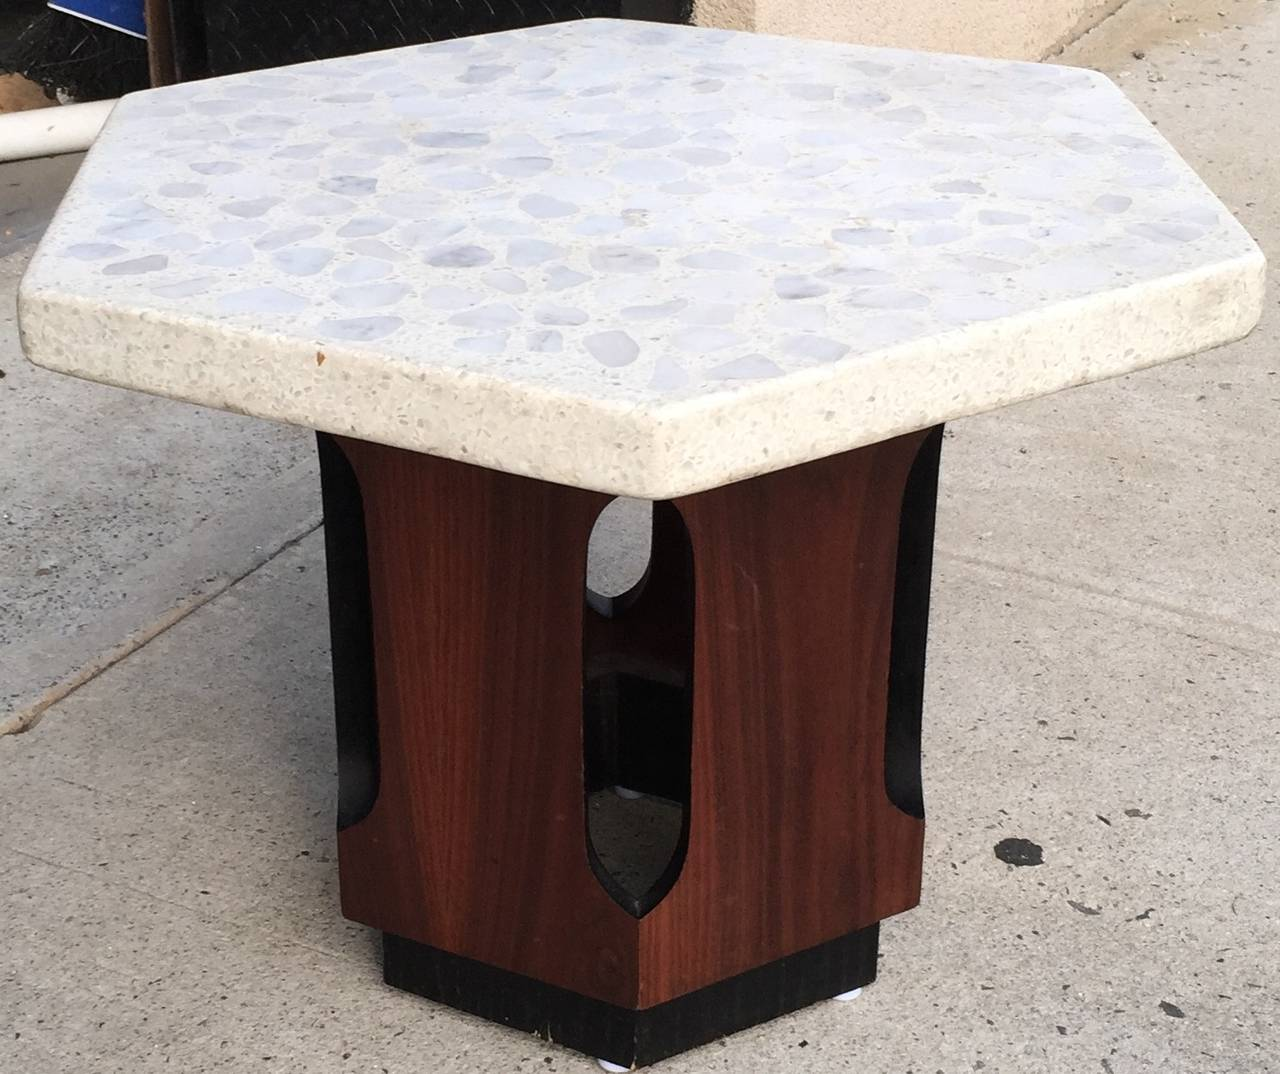 Classic Probber six-sided white terrazzo top table with Moorish arched walnut base.